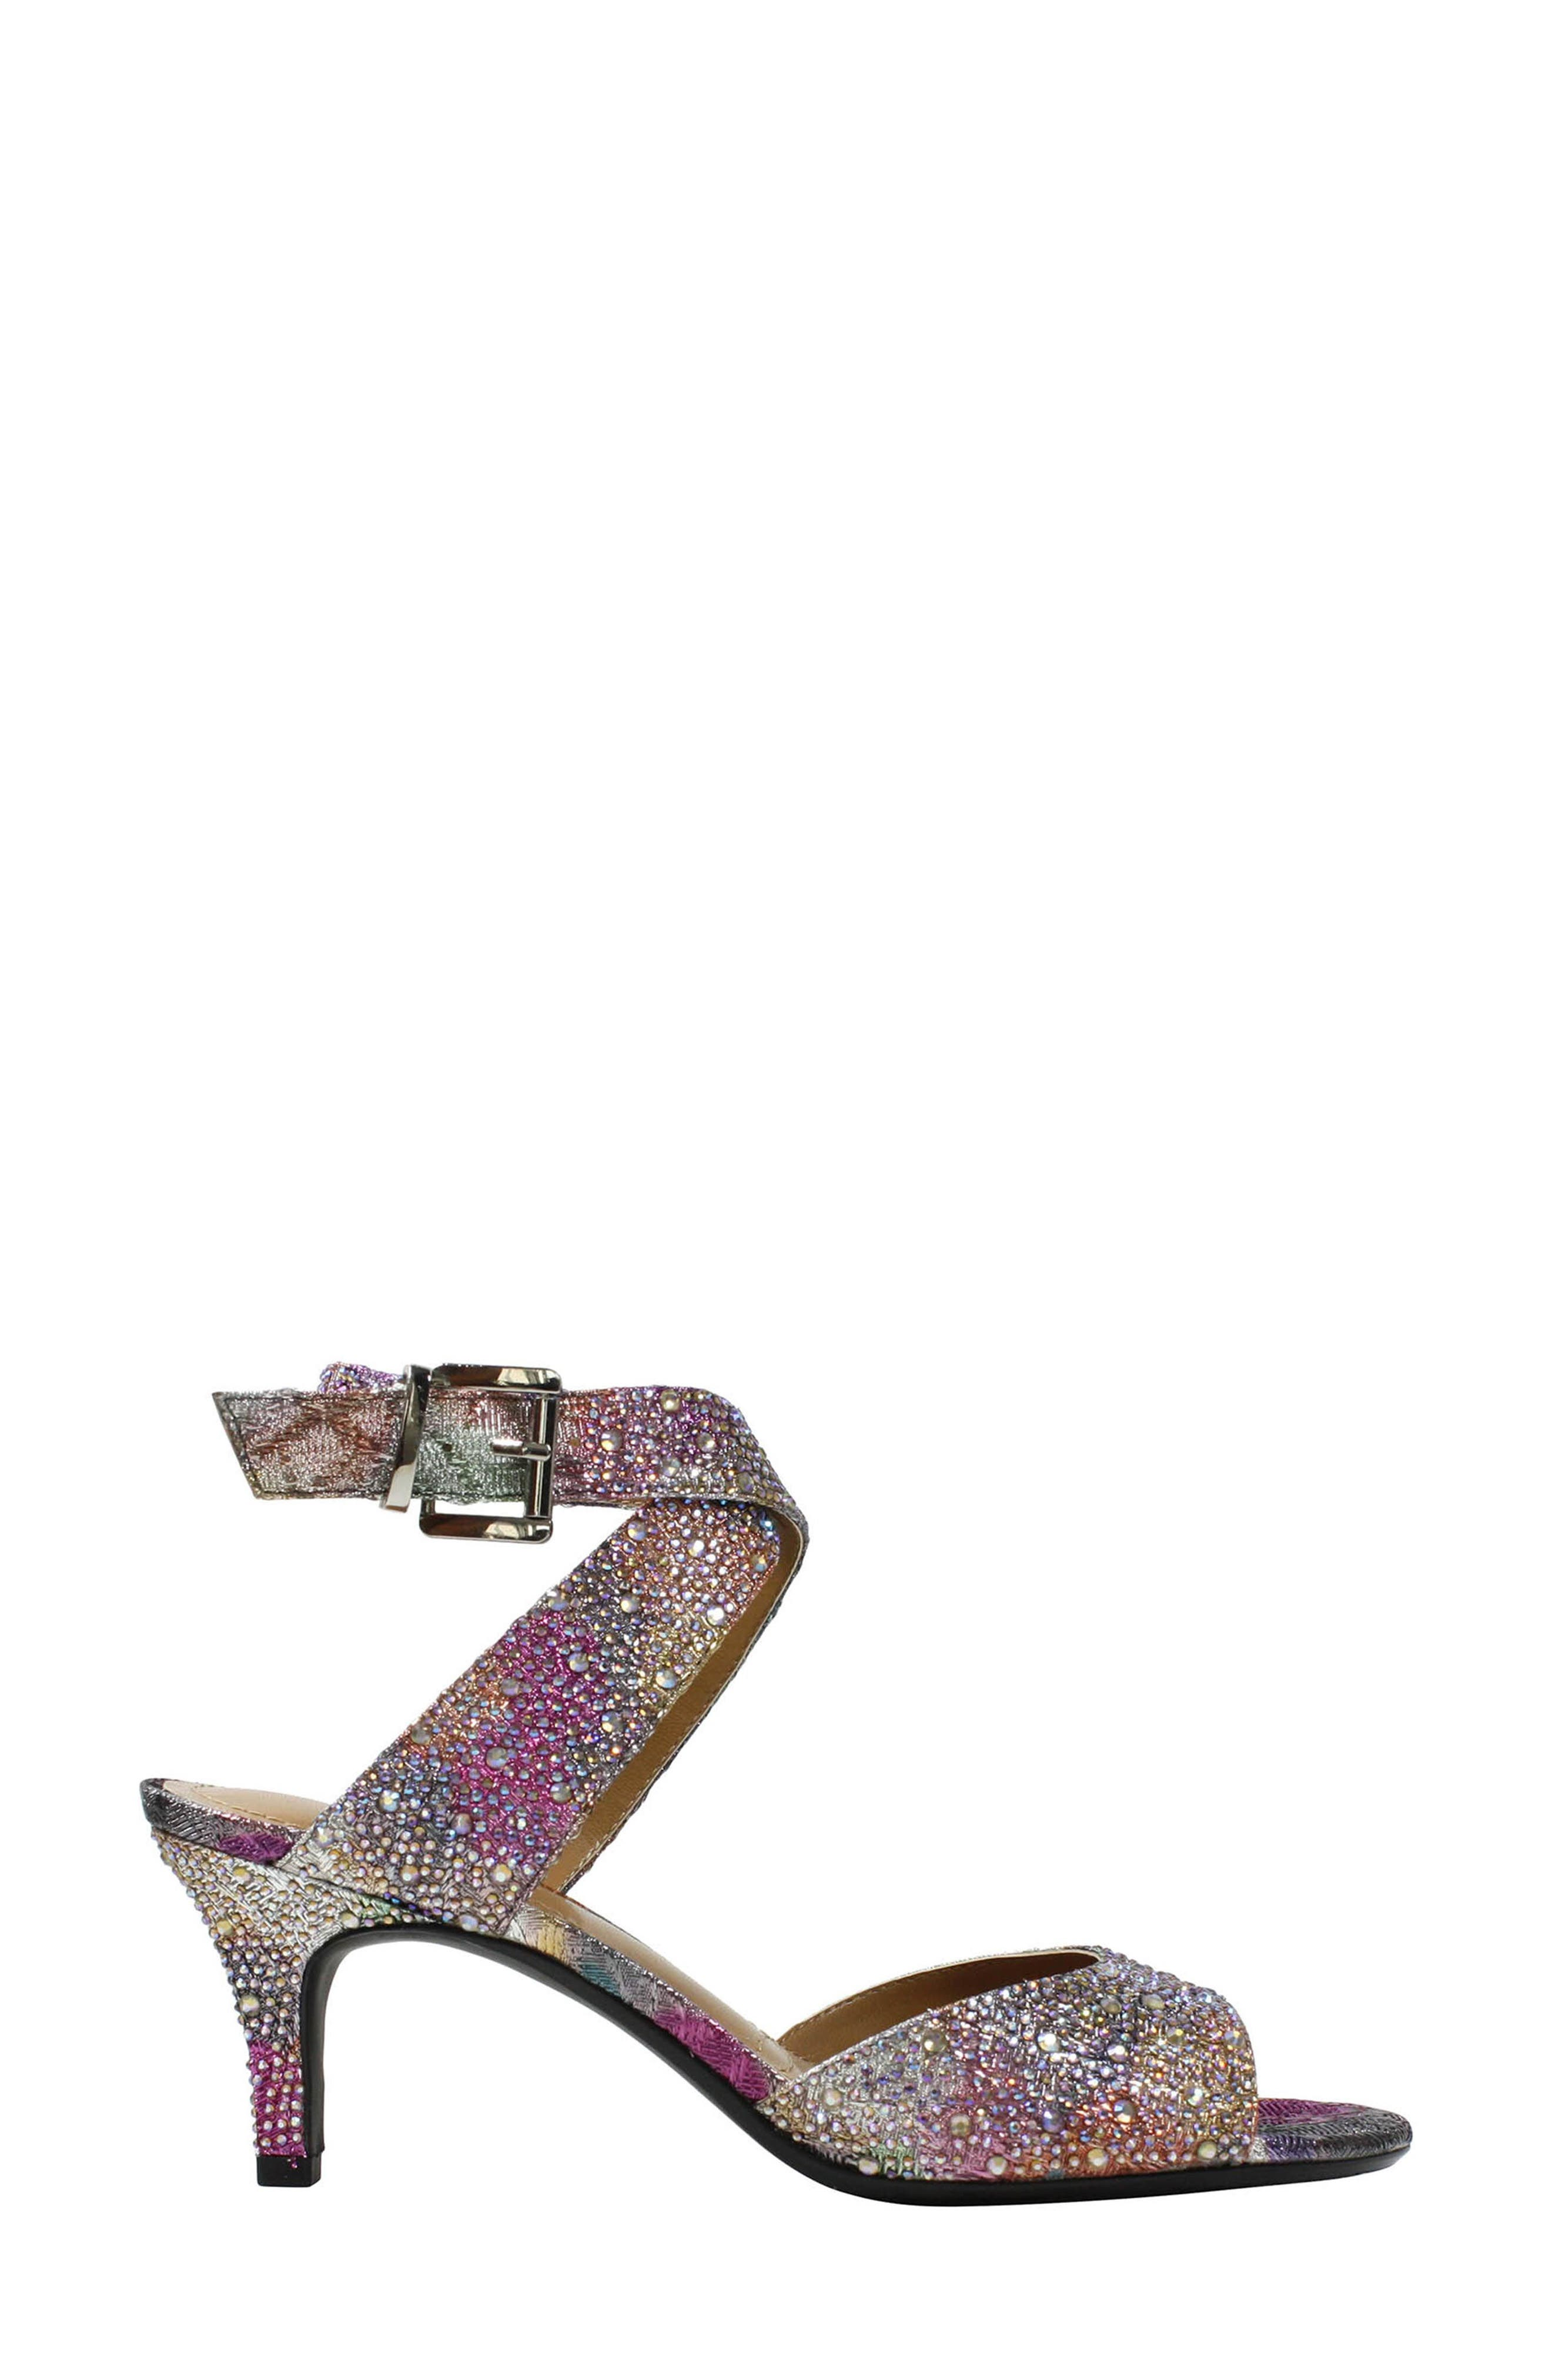 'Soncino' Ankle Strap Sandal,                             Alternate thumbnail 2, color,                             Silver/ Pastel Fabric